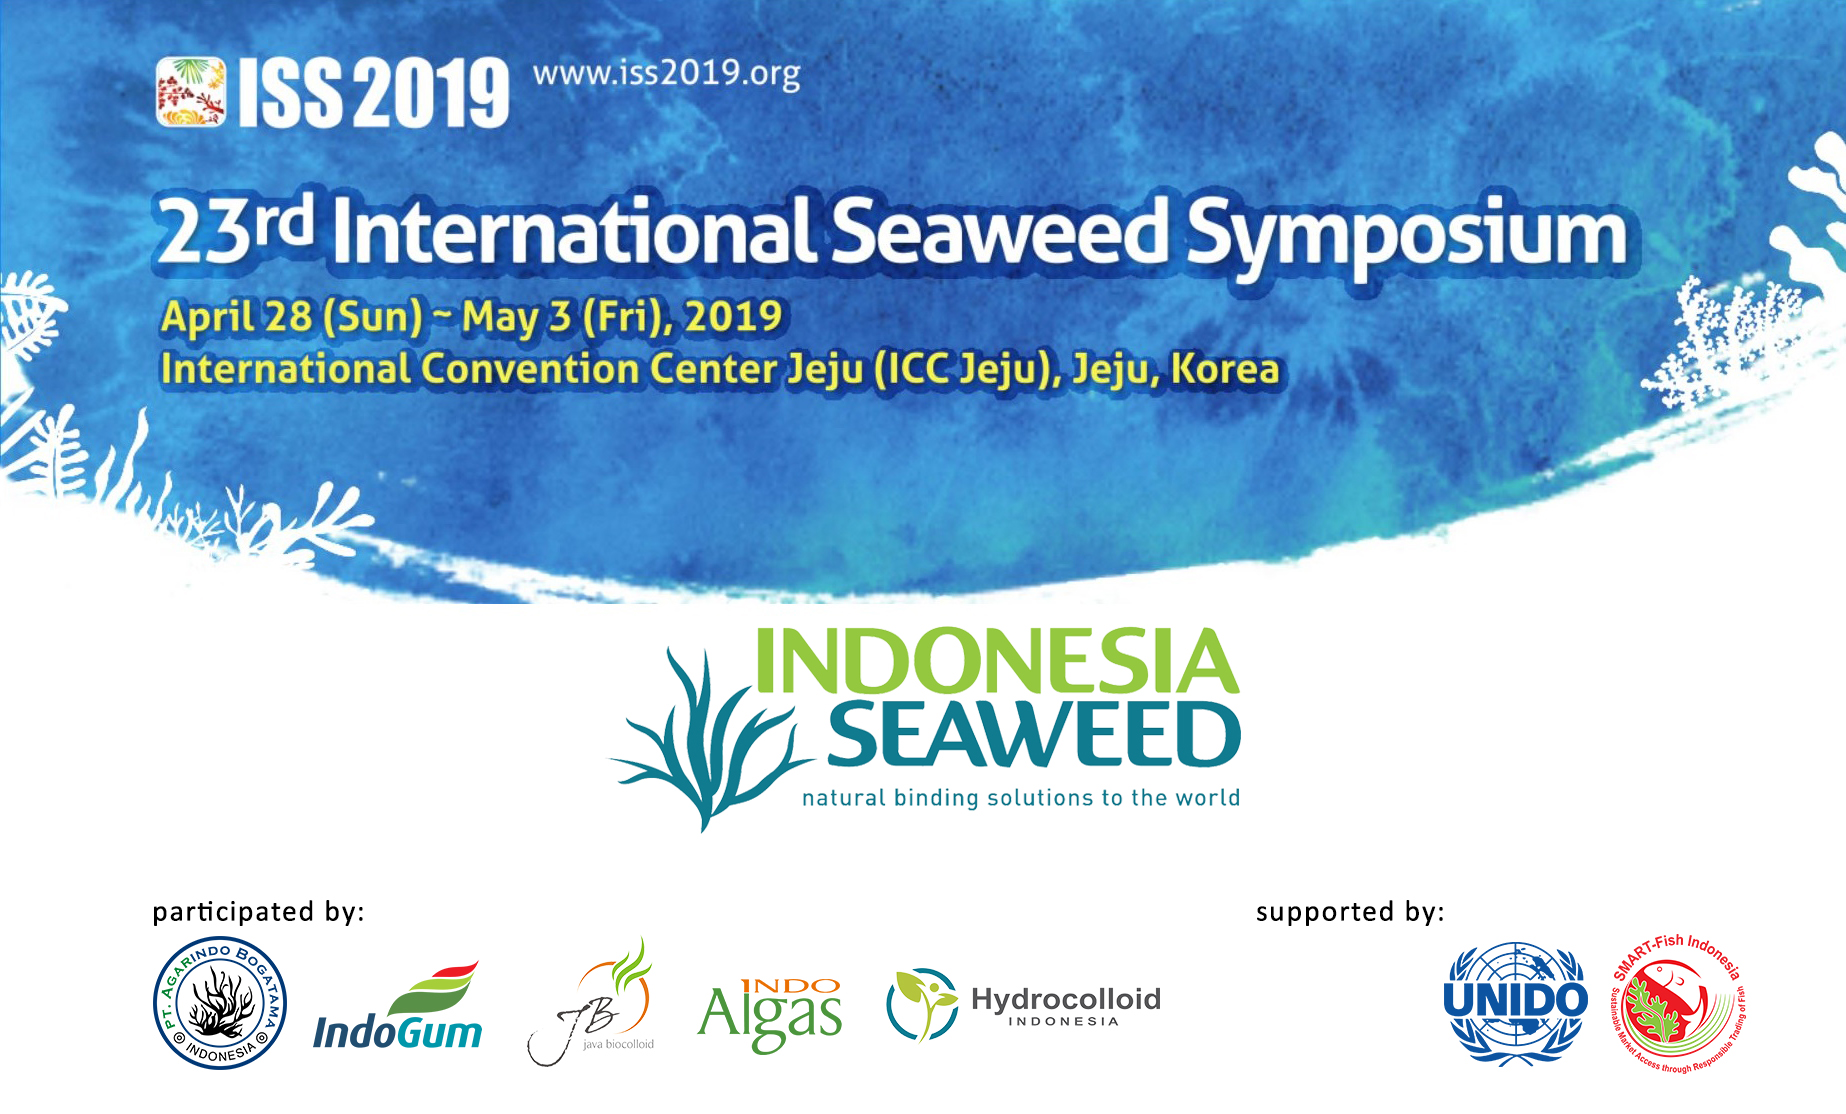 Indonesia Seaweed at ISS 2019 Jeju